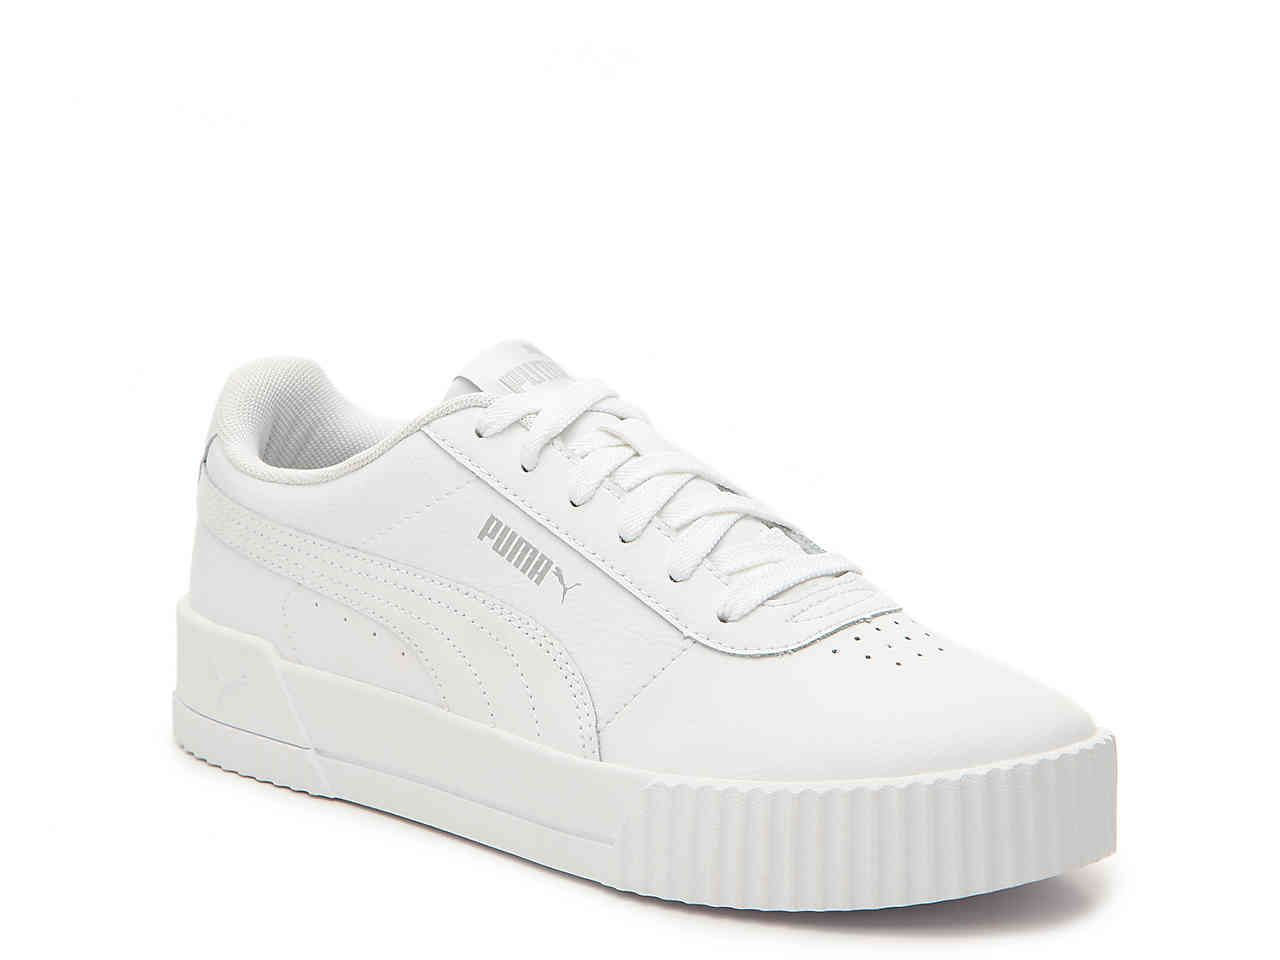 Puma Carina Sneaker - Women's Women's Shoes | DSW | White ...